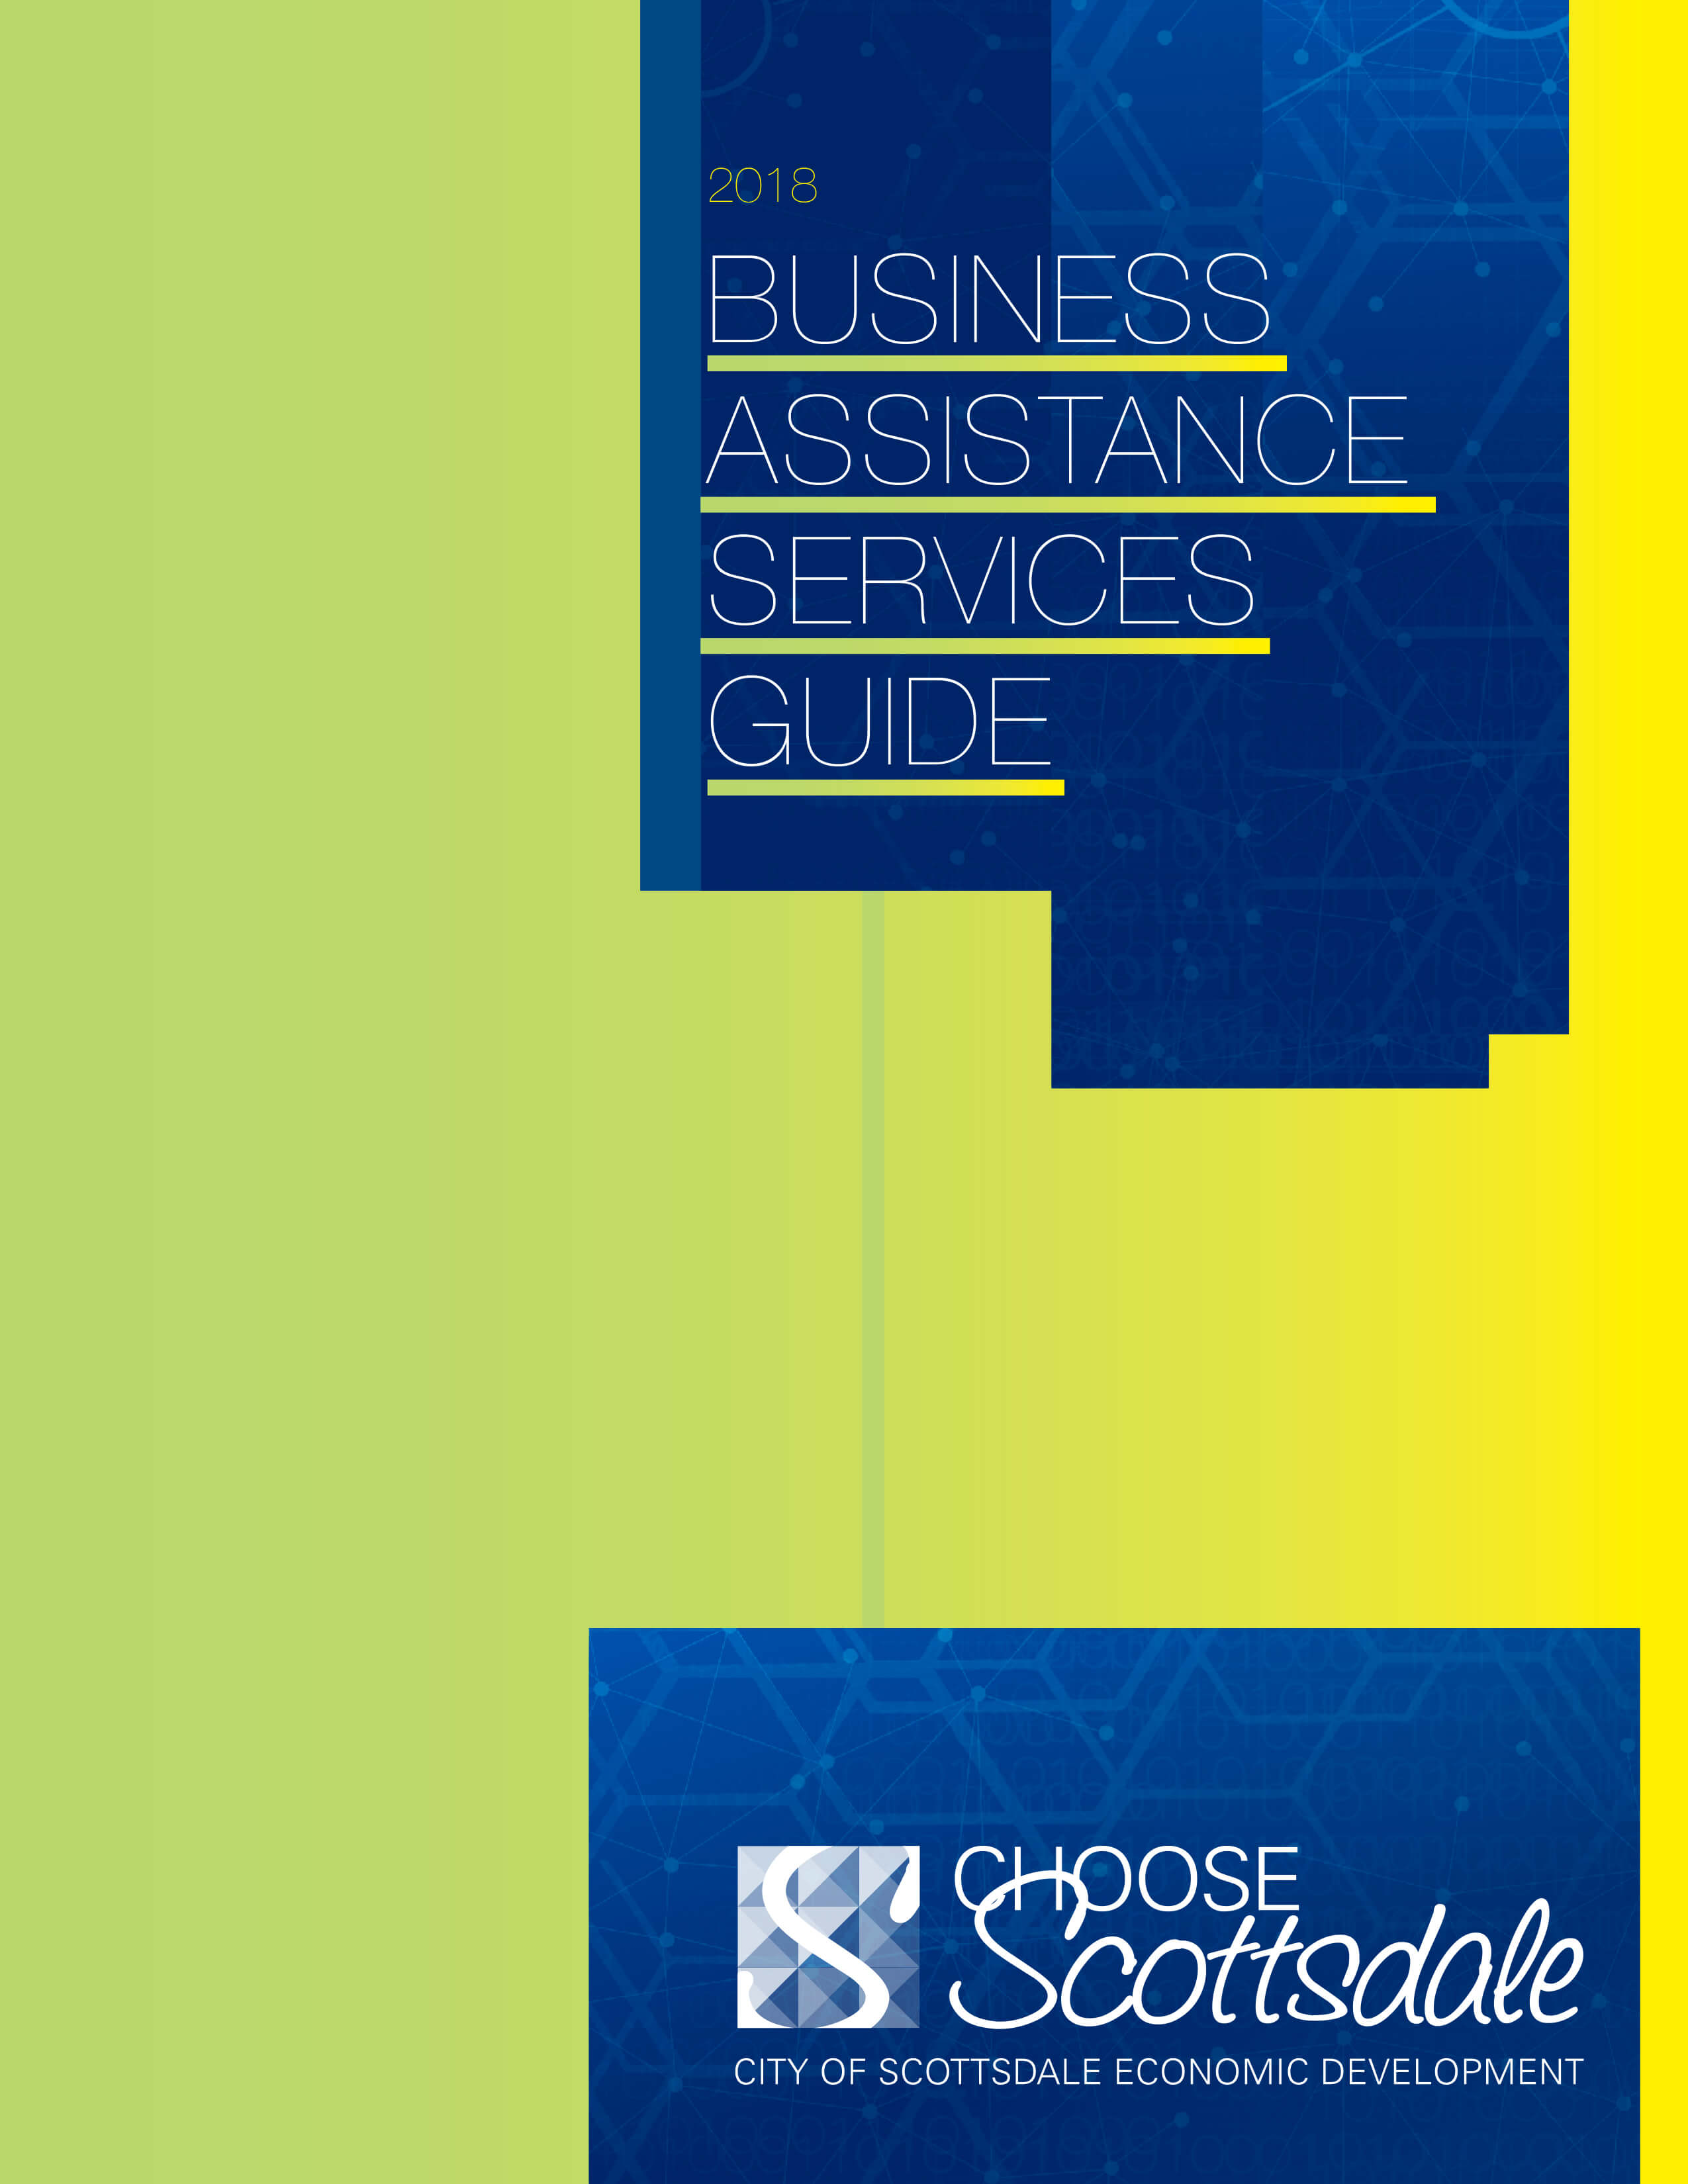 Business Assistance Services Guide